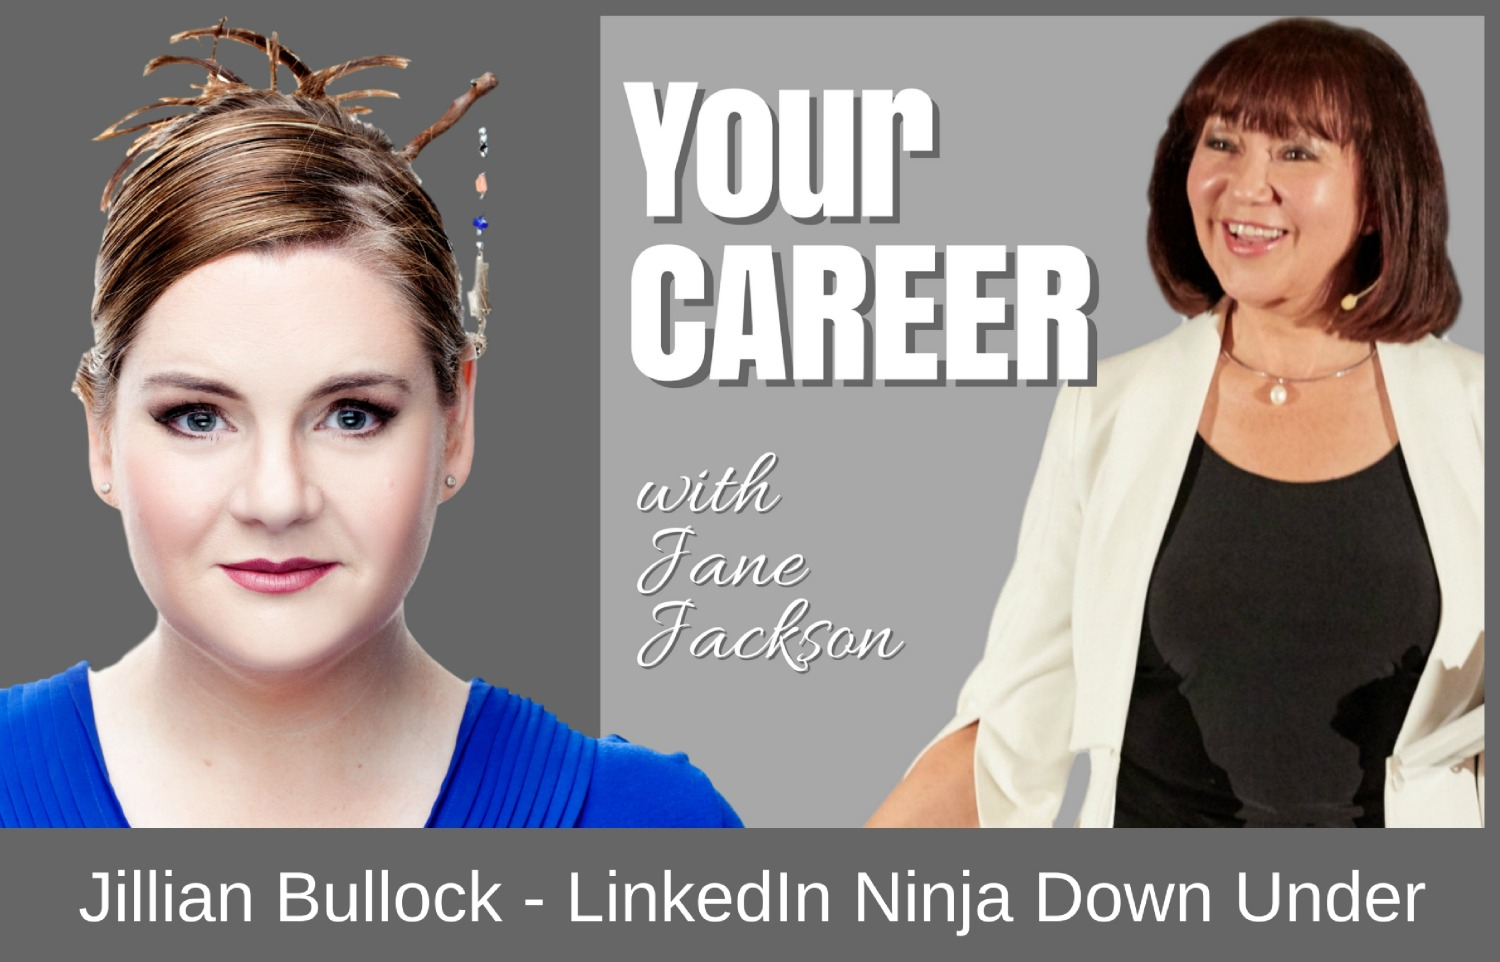 Jillian Bullock, LinkedIn, LinkedIn Ninja Down Under, Jane Jackson, career coach, your career podcast, career, sydney, australia